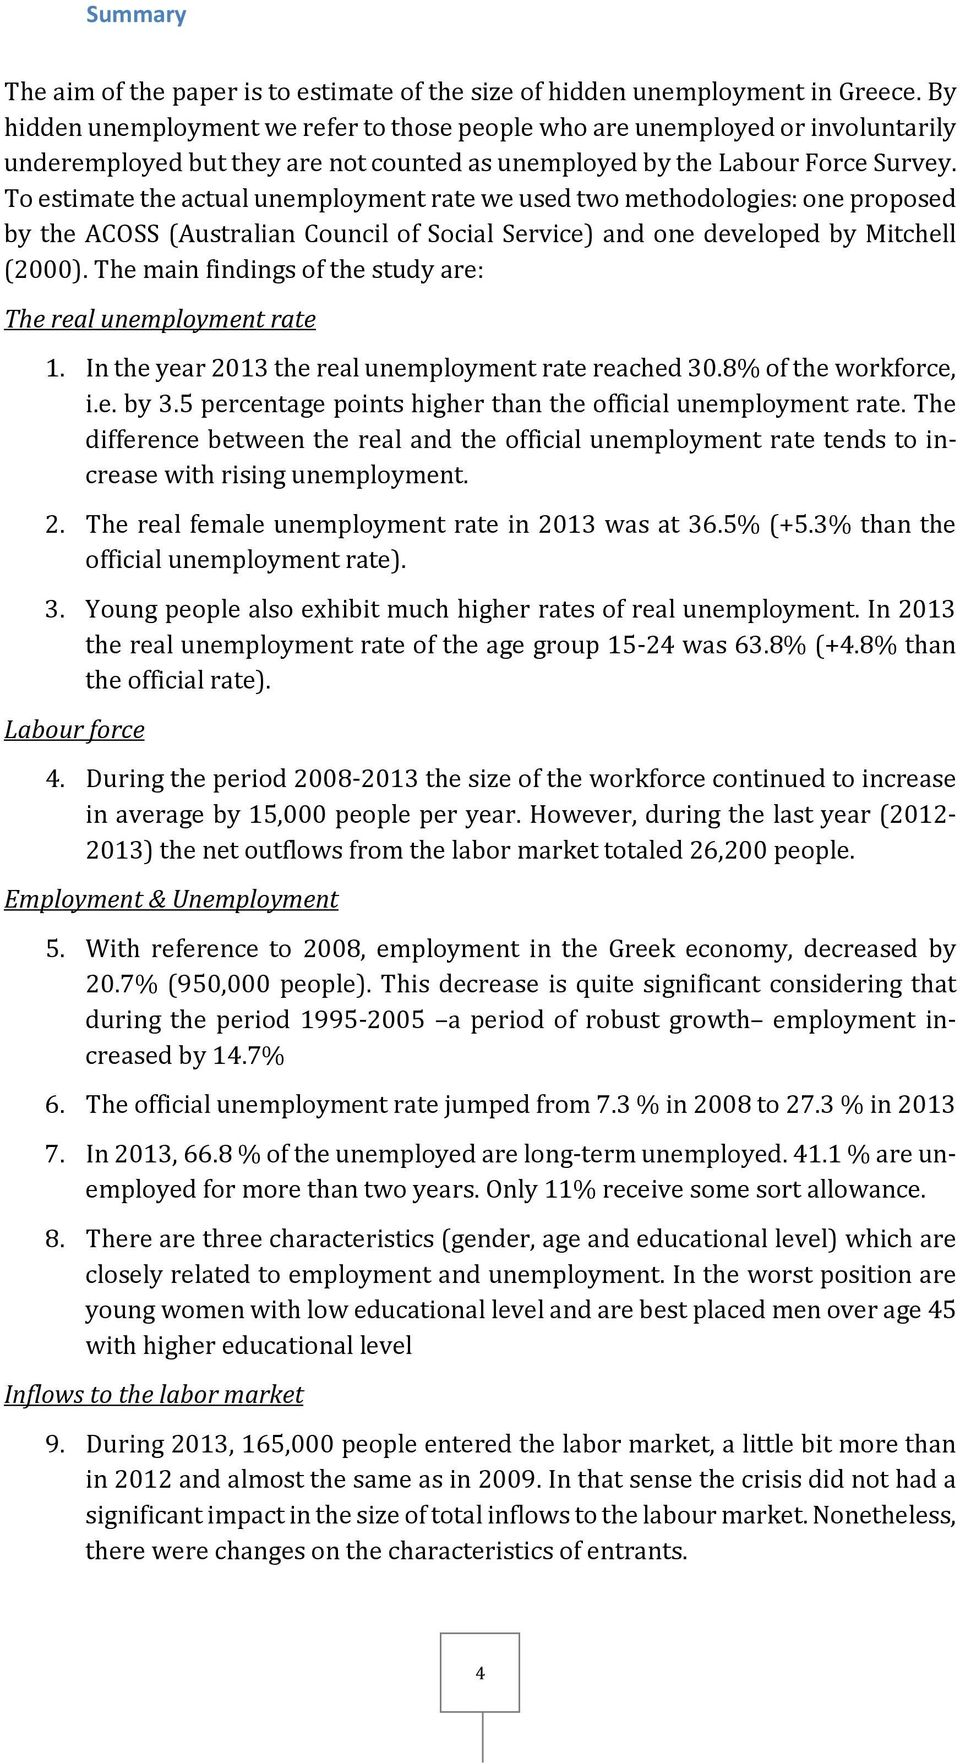 To estimate the actual unemployment rate we used two methodologies: one proposed by the ACOSS (Australian Council of Social Service) and one developed by Mitchell (2000).